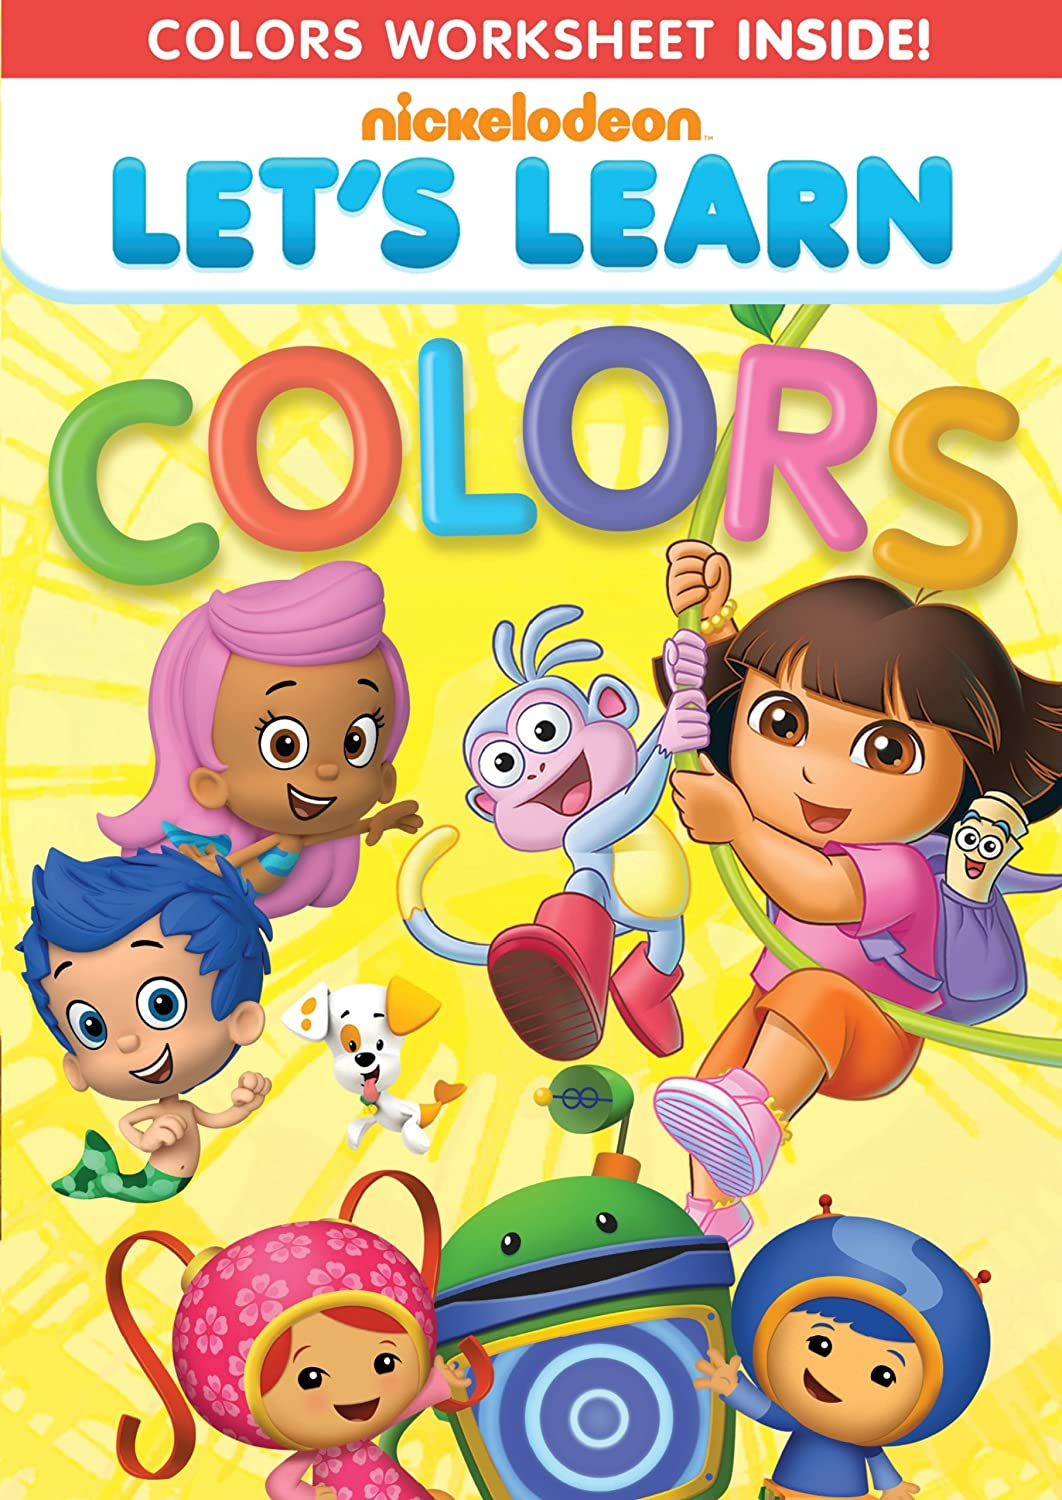 http://www.amazon.com/Nickelodeon-Lets-Learn-Colors/dp/B00CKYHH82/